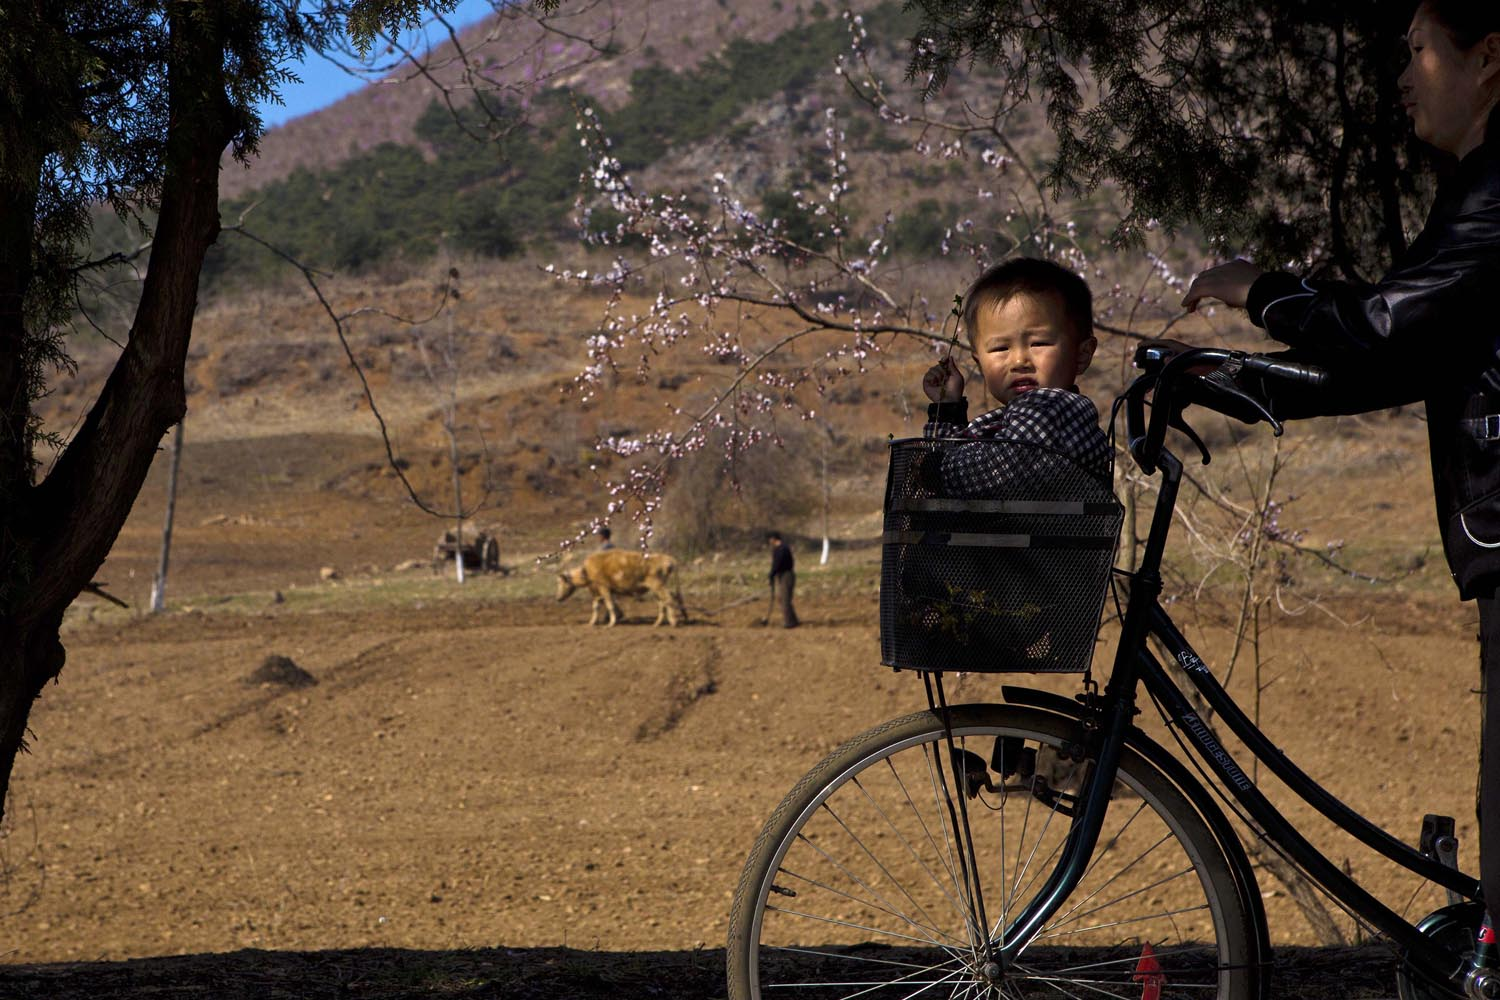 April 24, 2013. A North Korean boy rides in a bicycle's basket on a road north of Kaesong, North Korea.